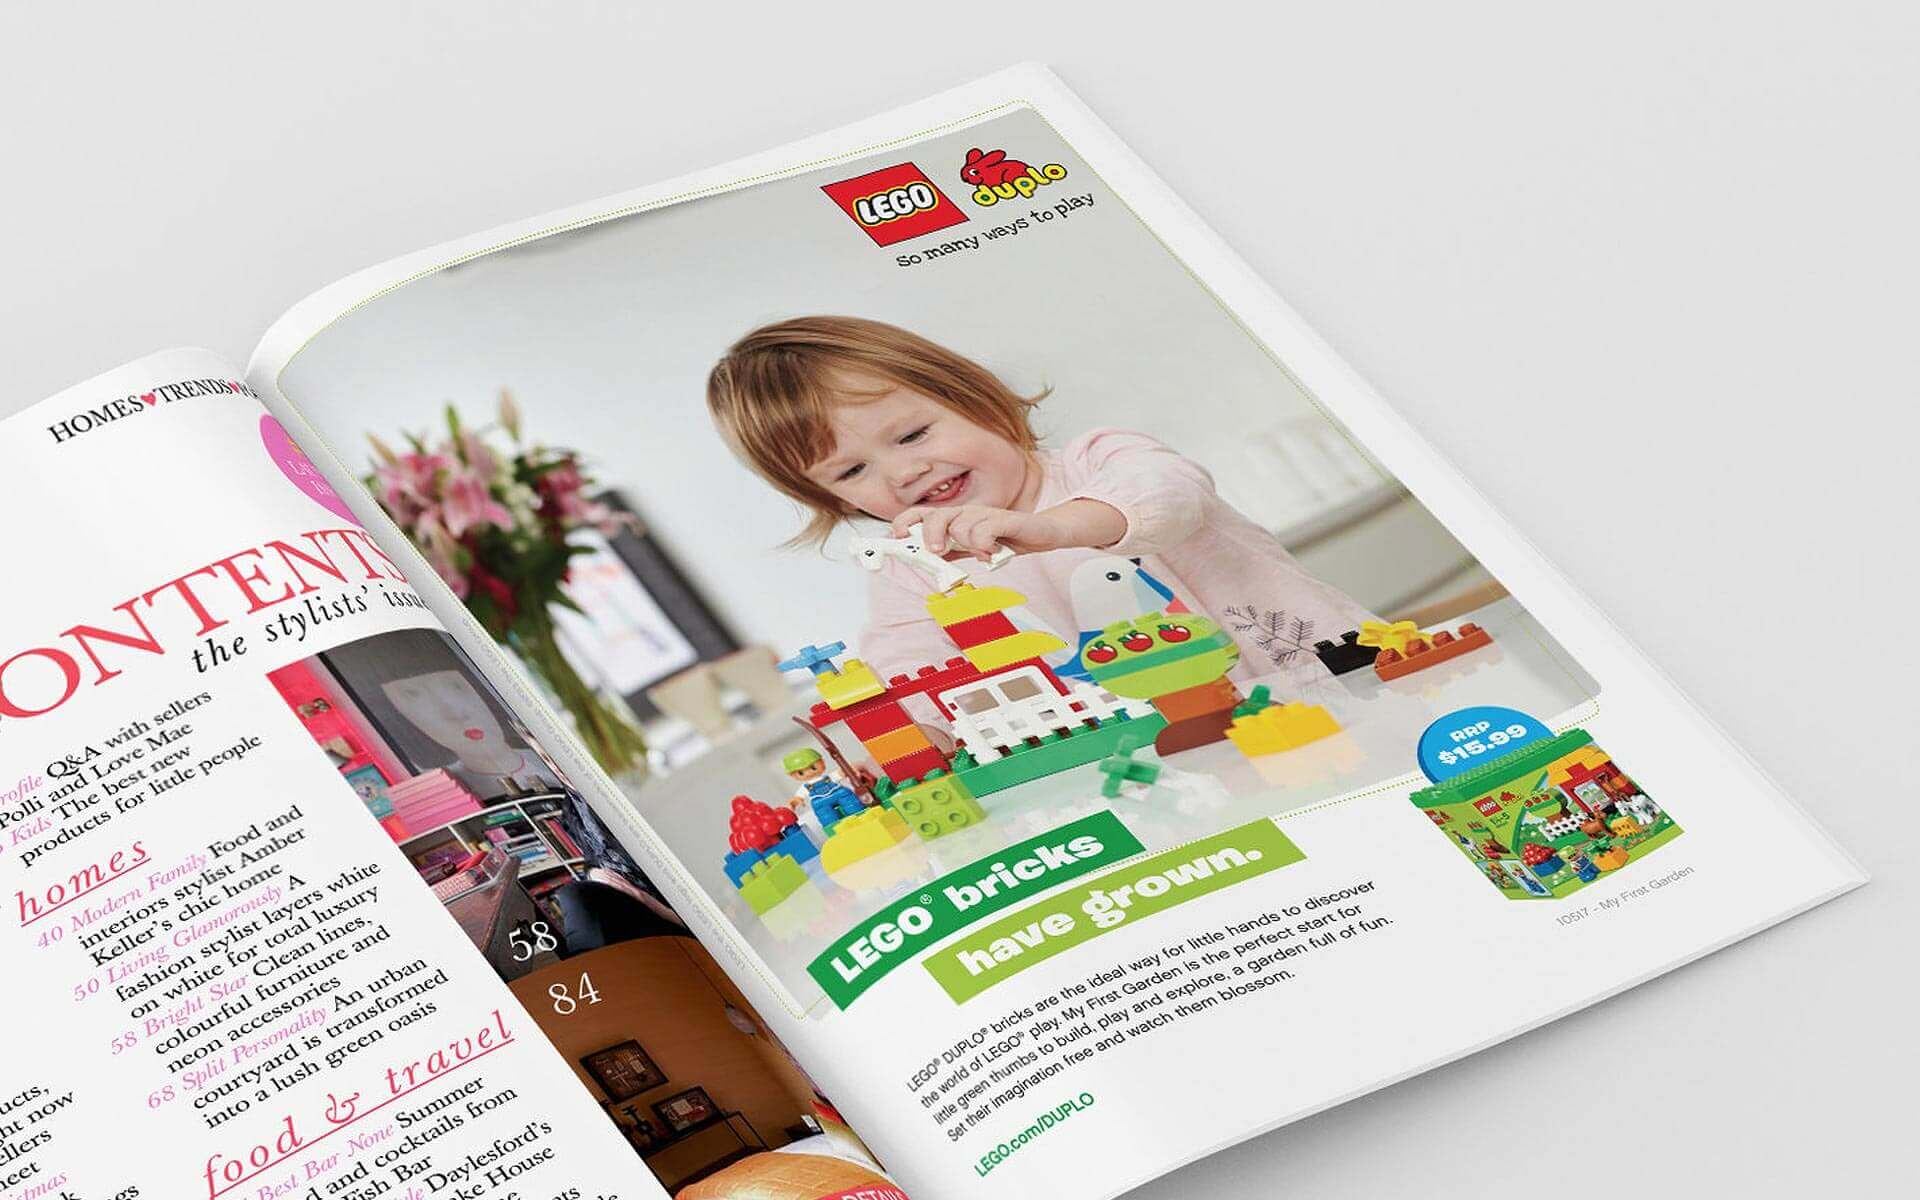 LEGO Duplo 'LEGO Bricks Have Grown' magazine ad.